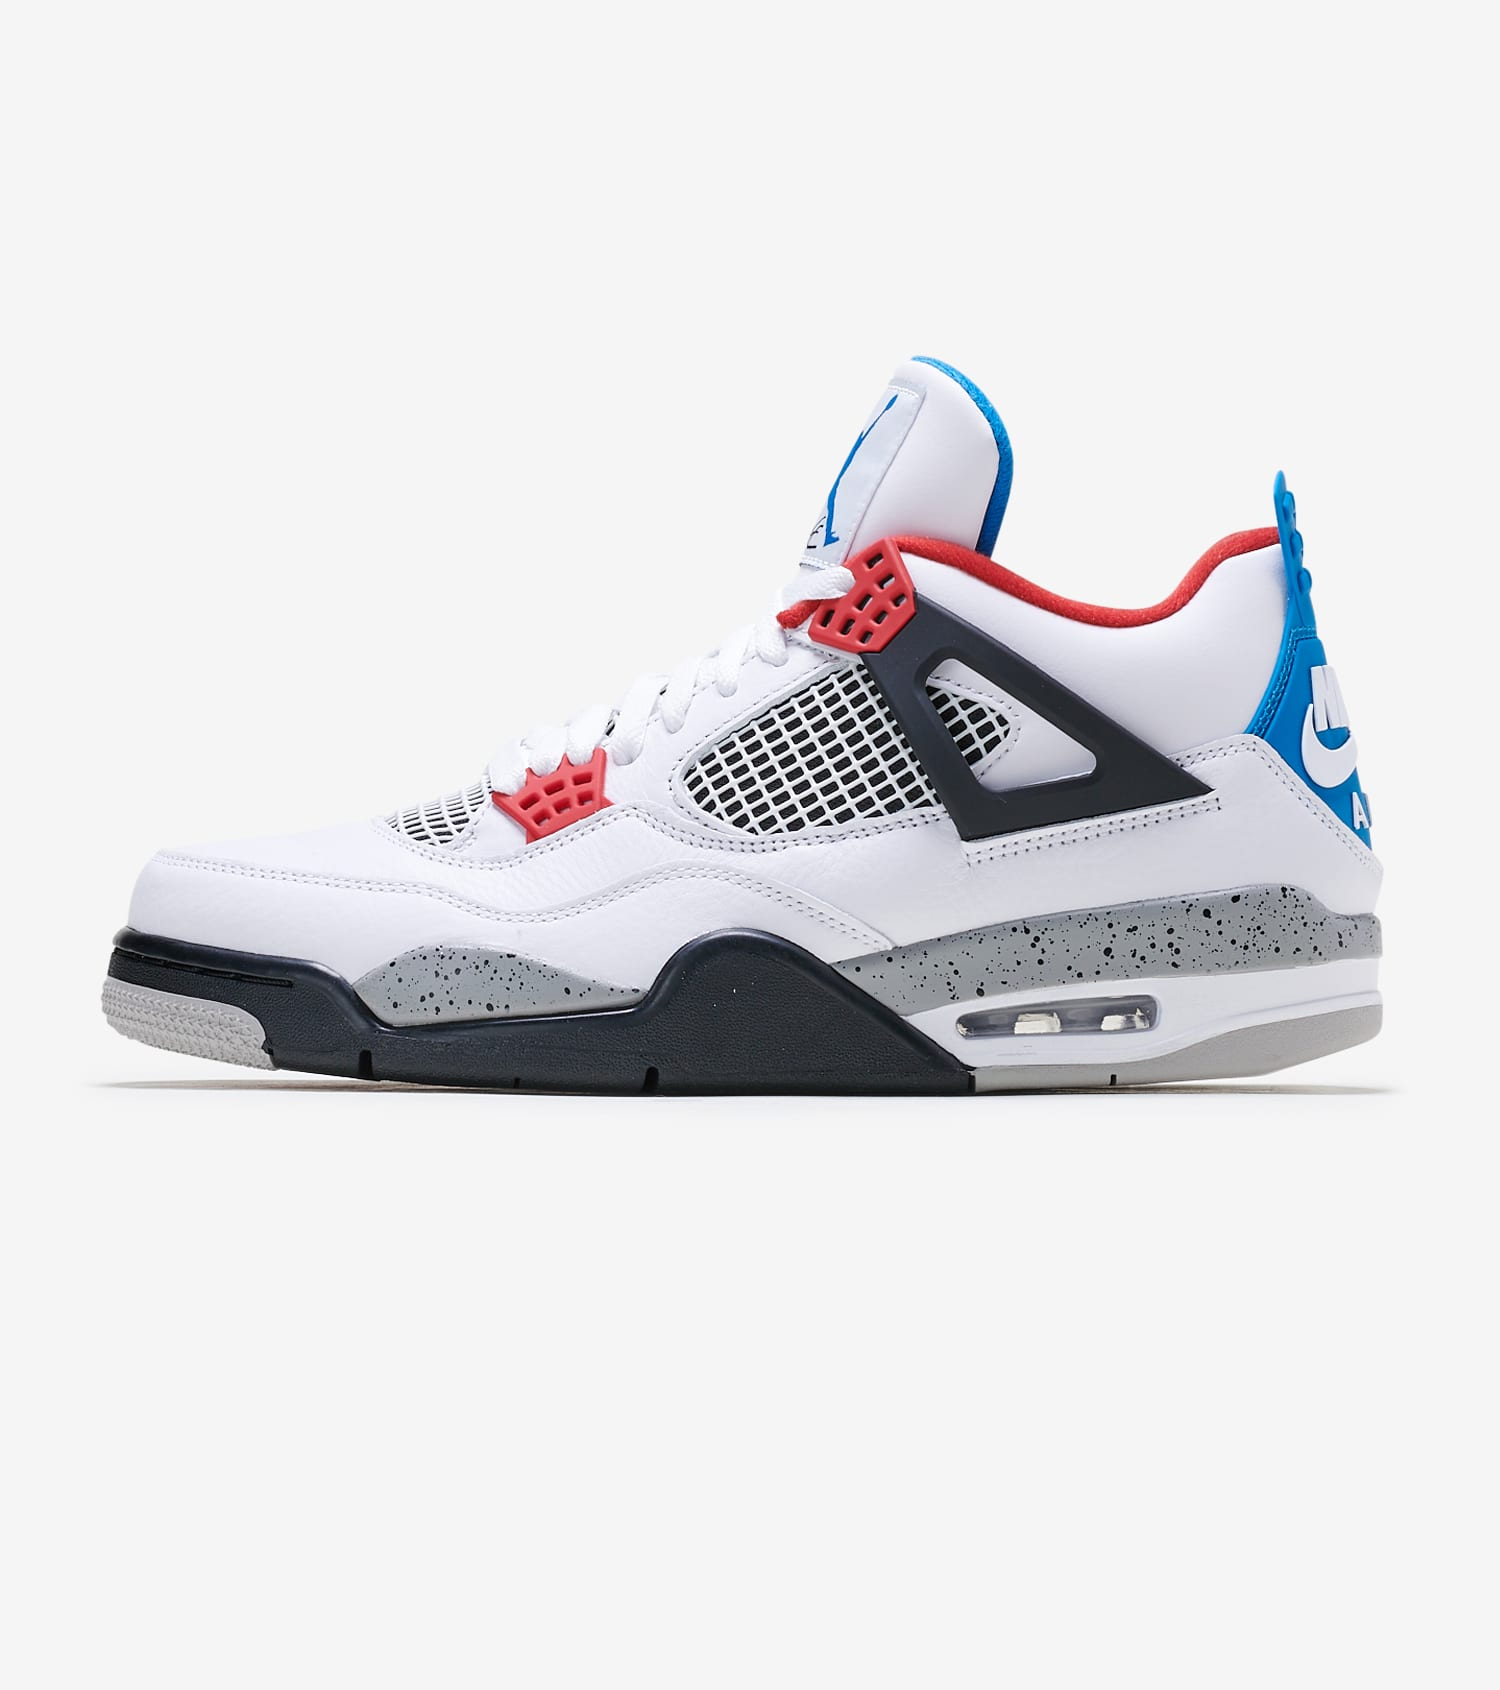 jordan retro 4 on sale